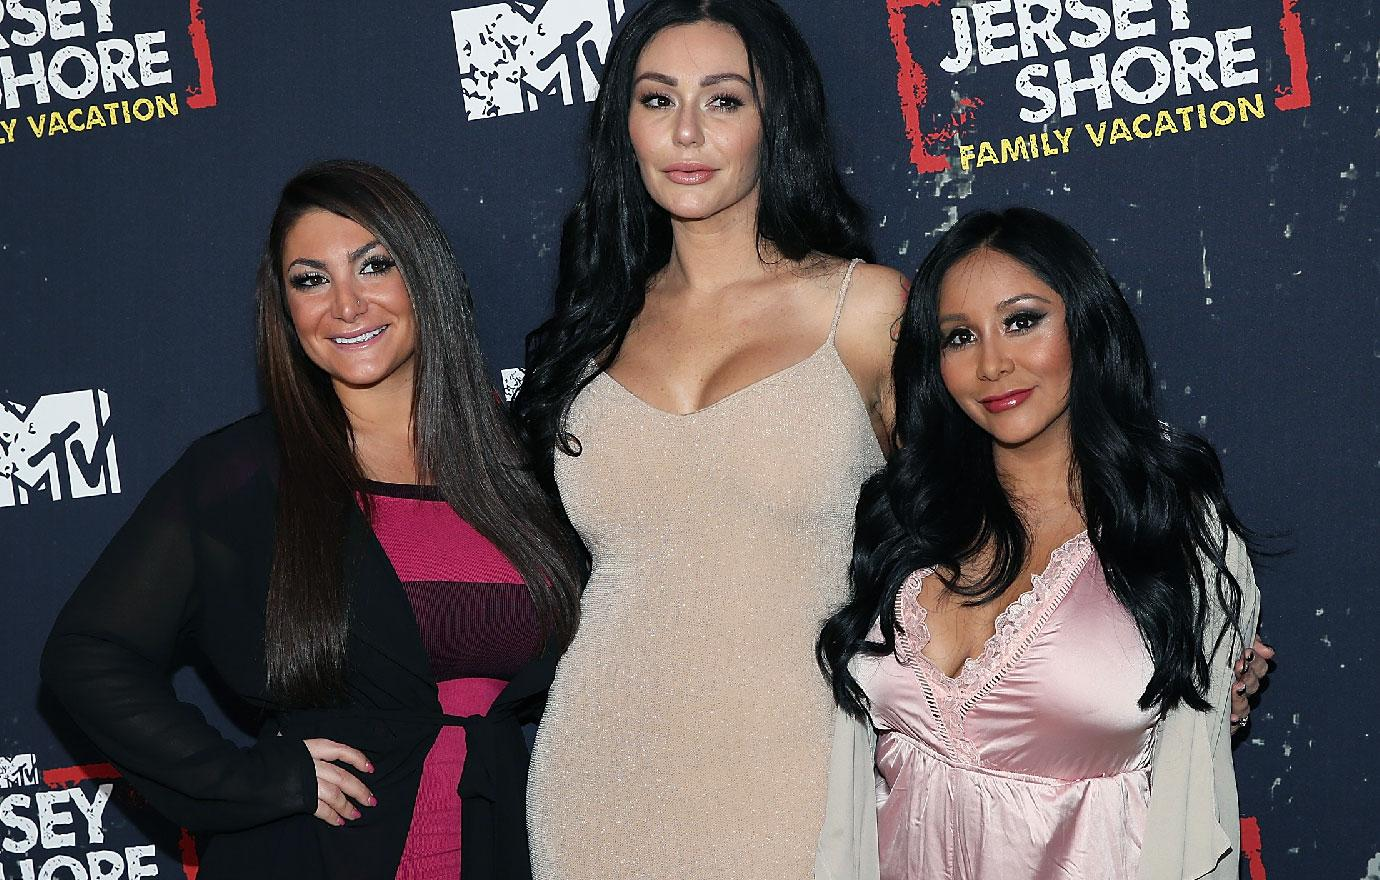 Jersey Shore Female Stars Have Baby Shower Reunion